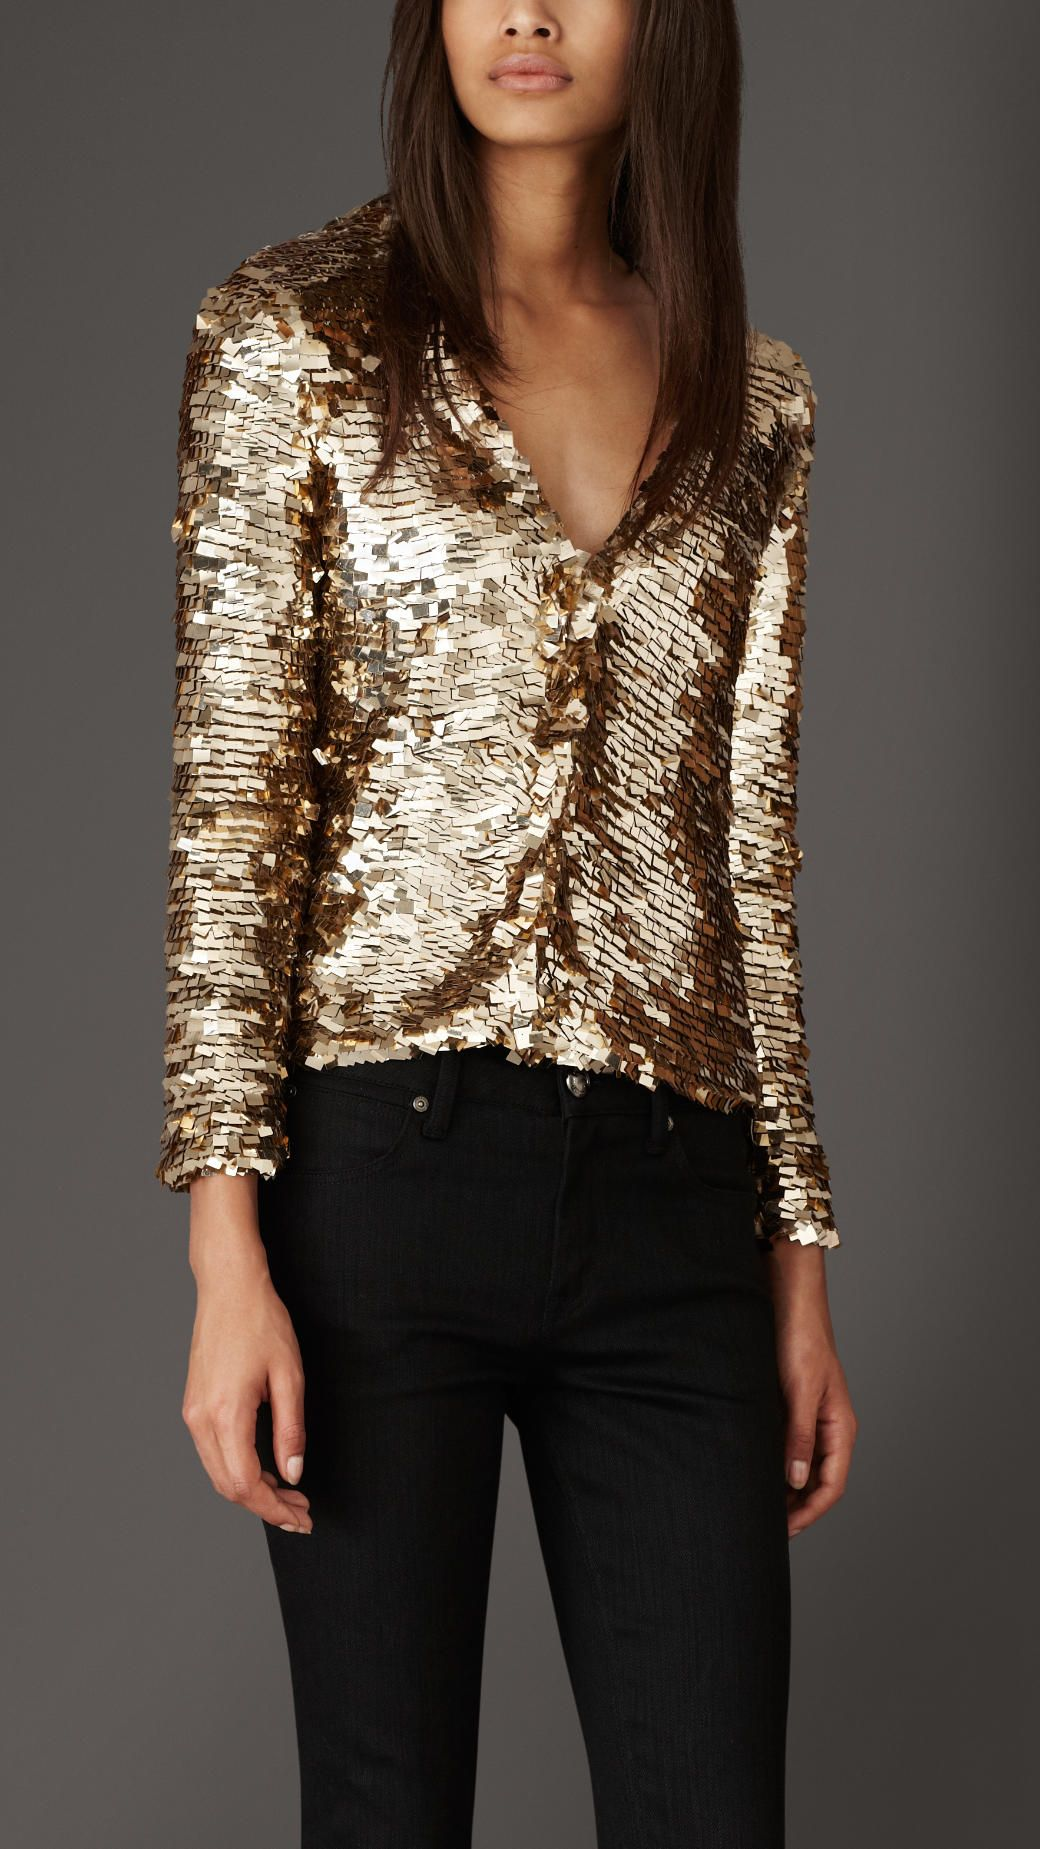 Women's Clothing | Burberry | Sequin cardigan and Sequins